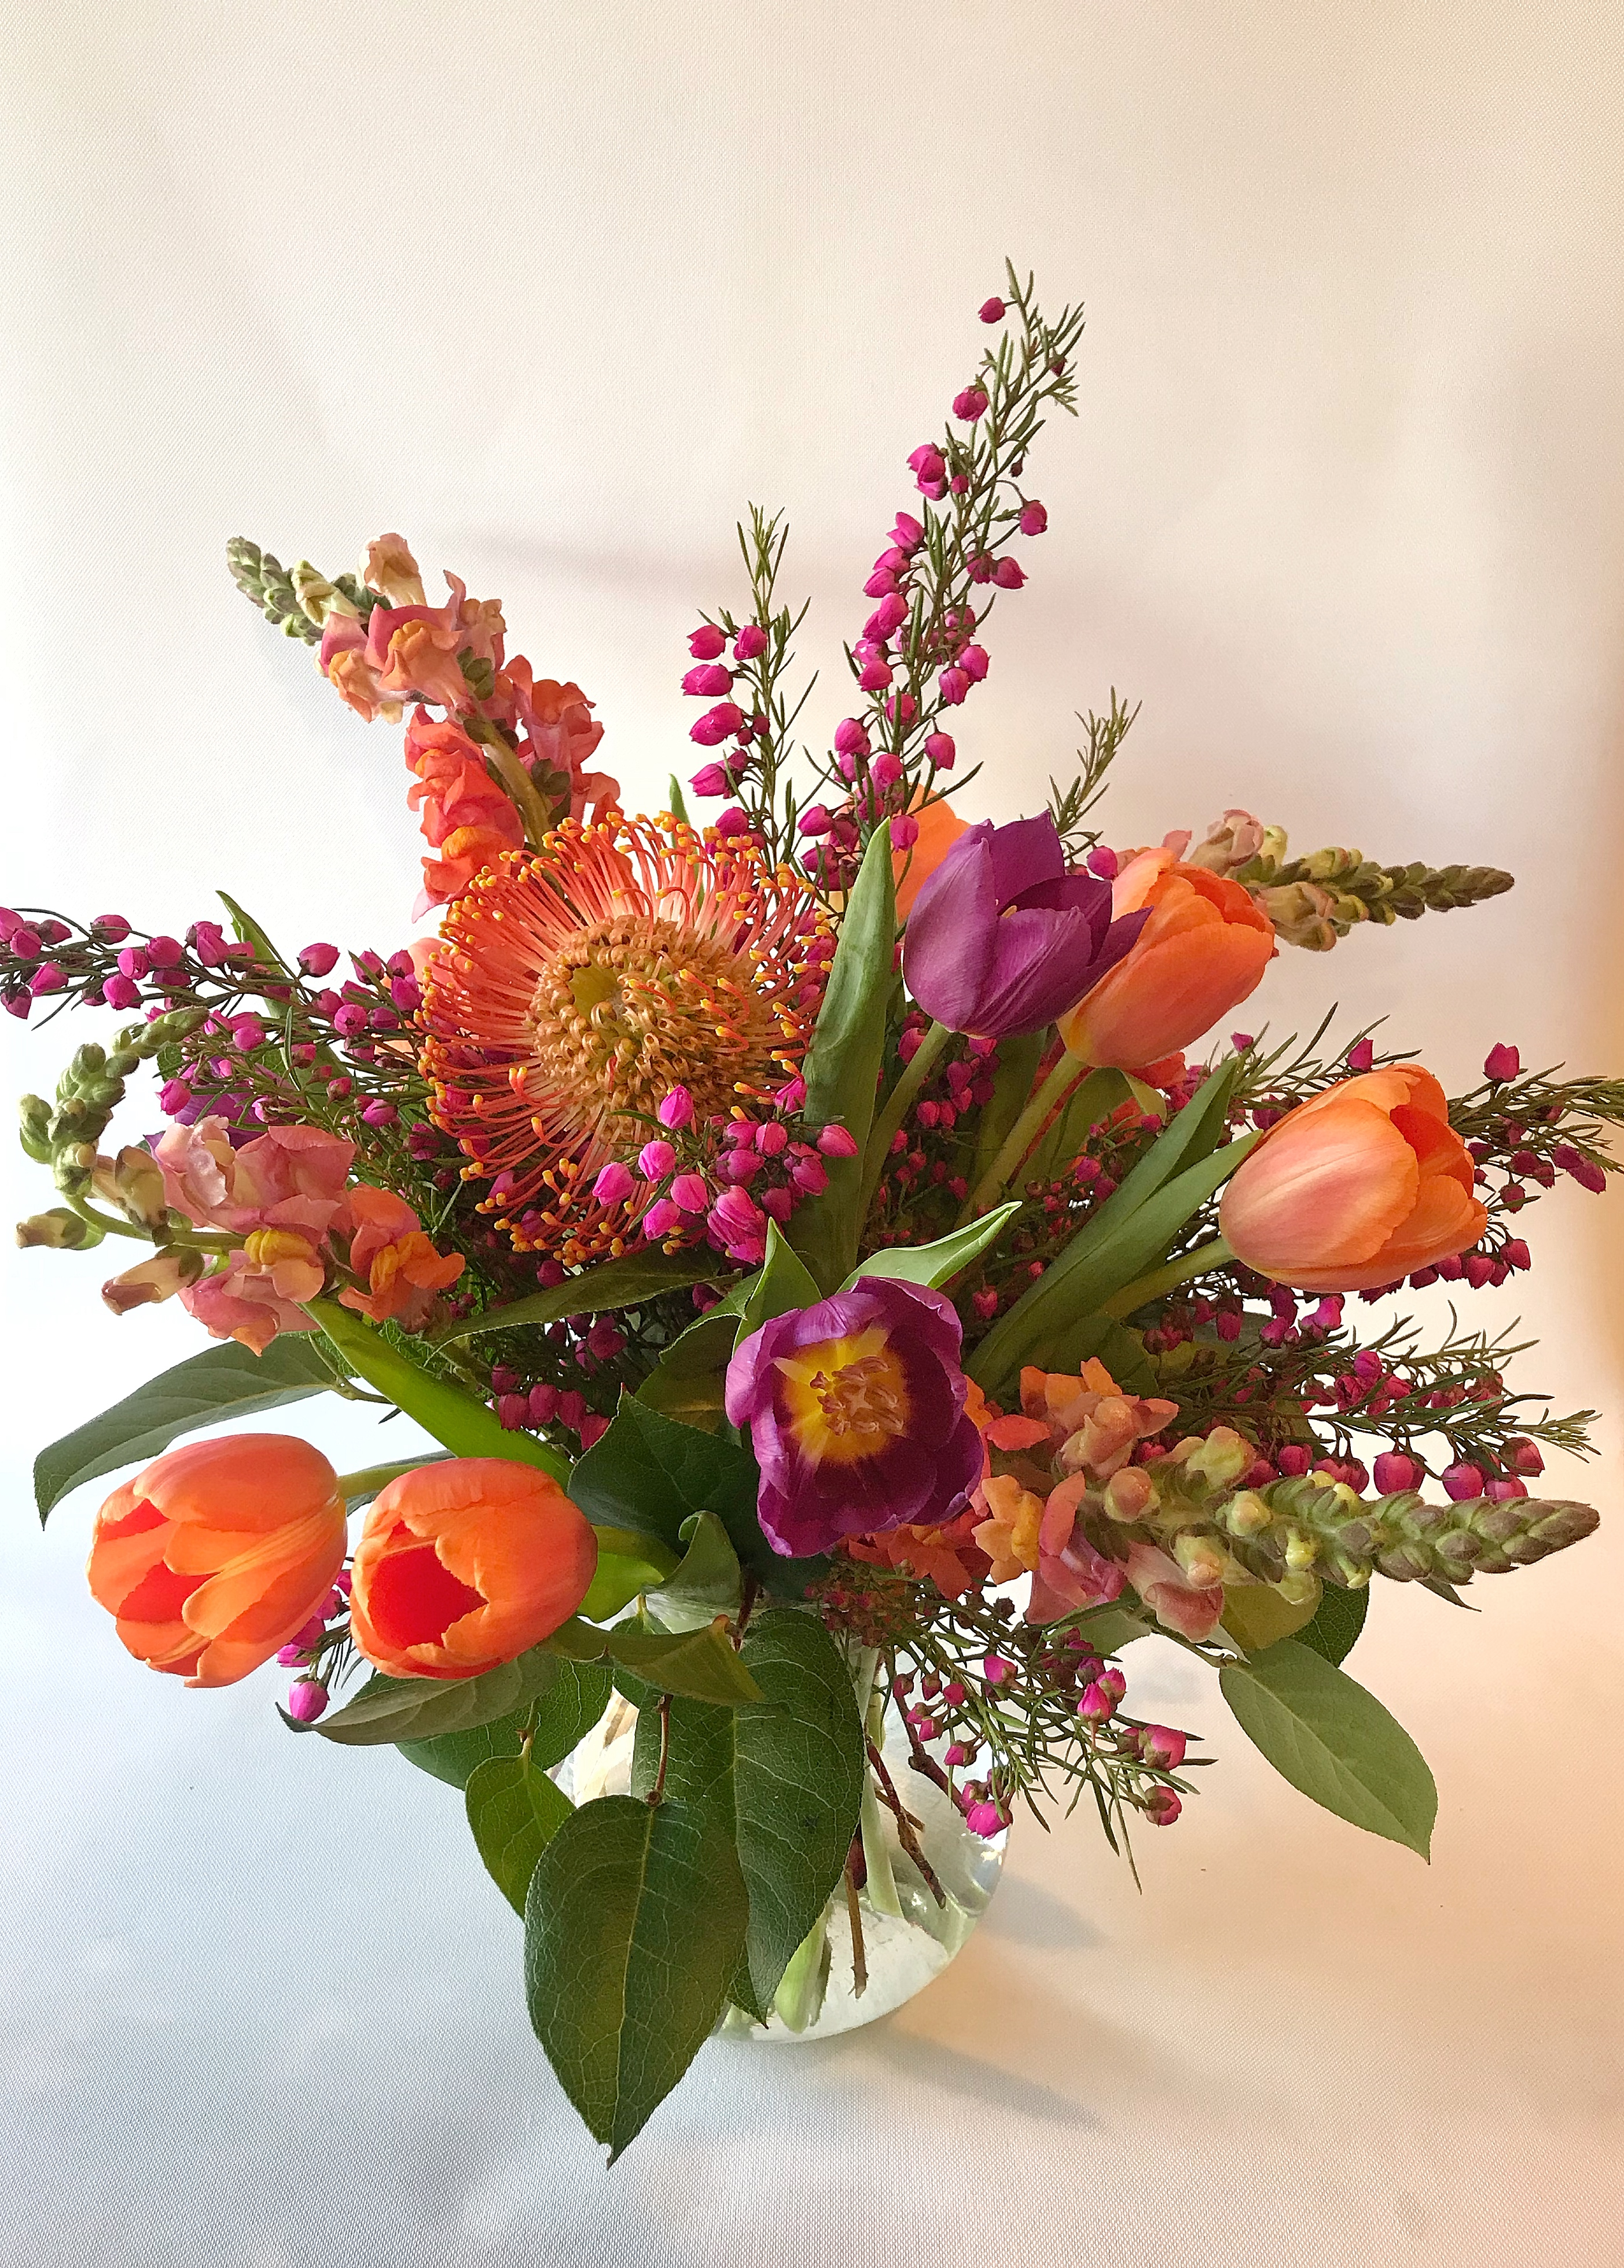 Marvelous Purple Magenta Orange Pink Green Protea Tulips Snapdragons Download Free Architecture Designs Estepponolmadebymaigaardcom